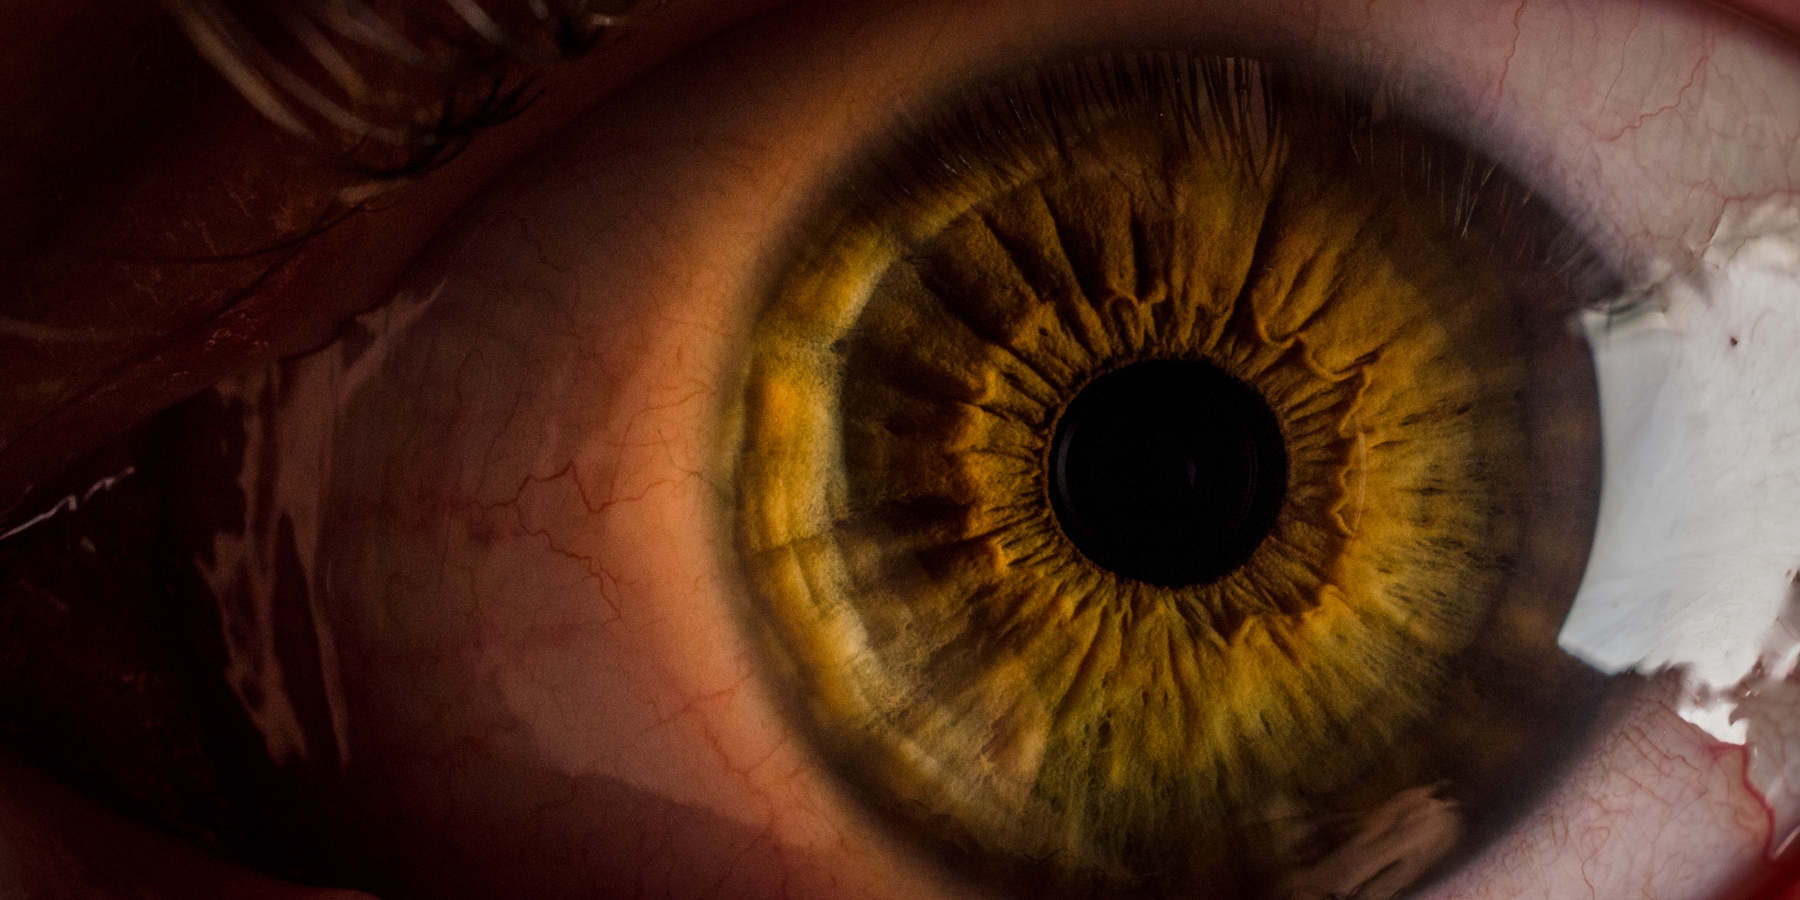 How Traumatic Experiences Can Leave Their Mark on the Human Eye